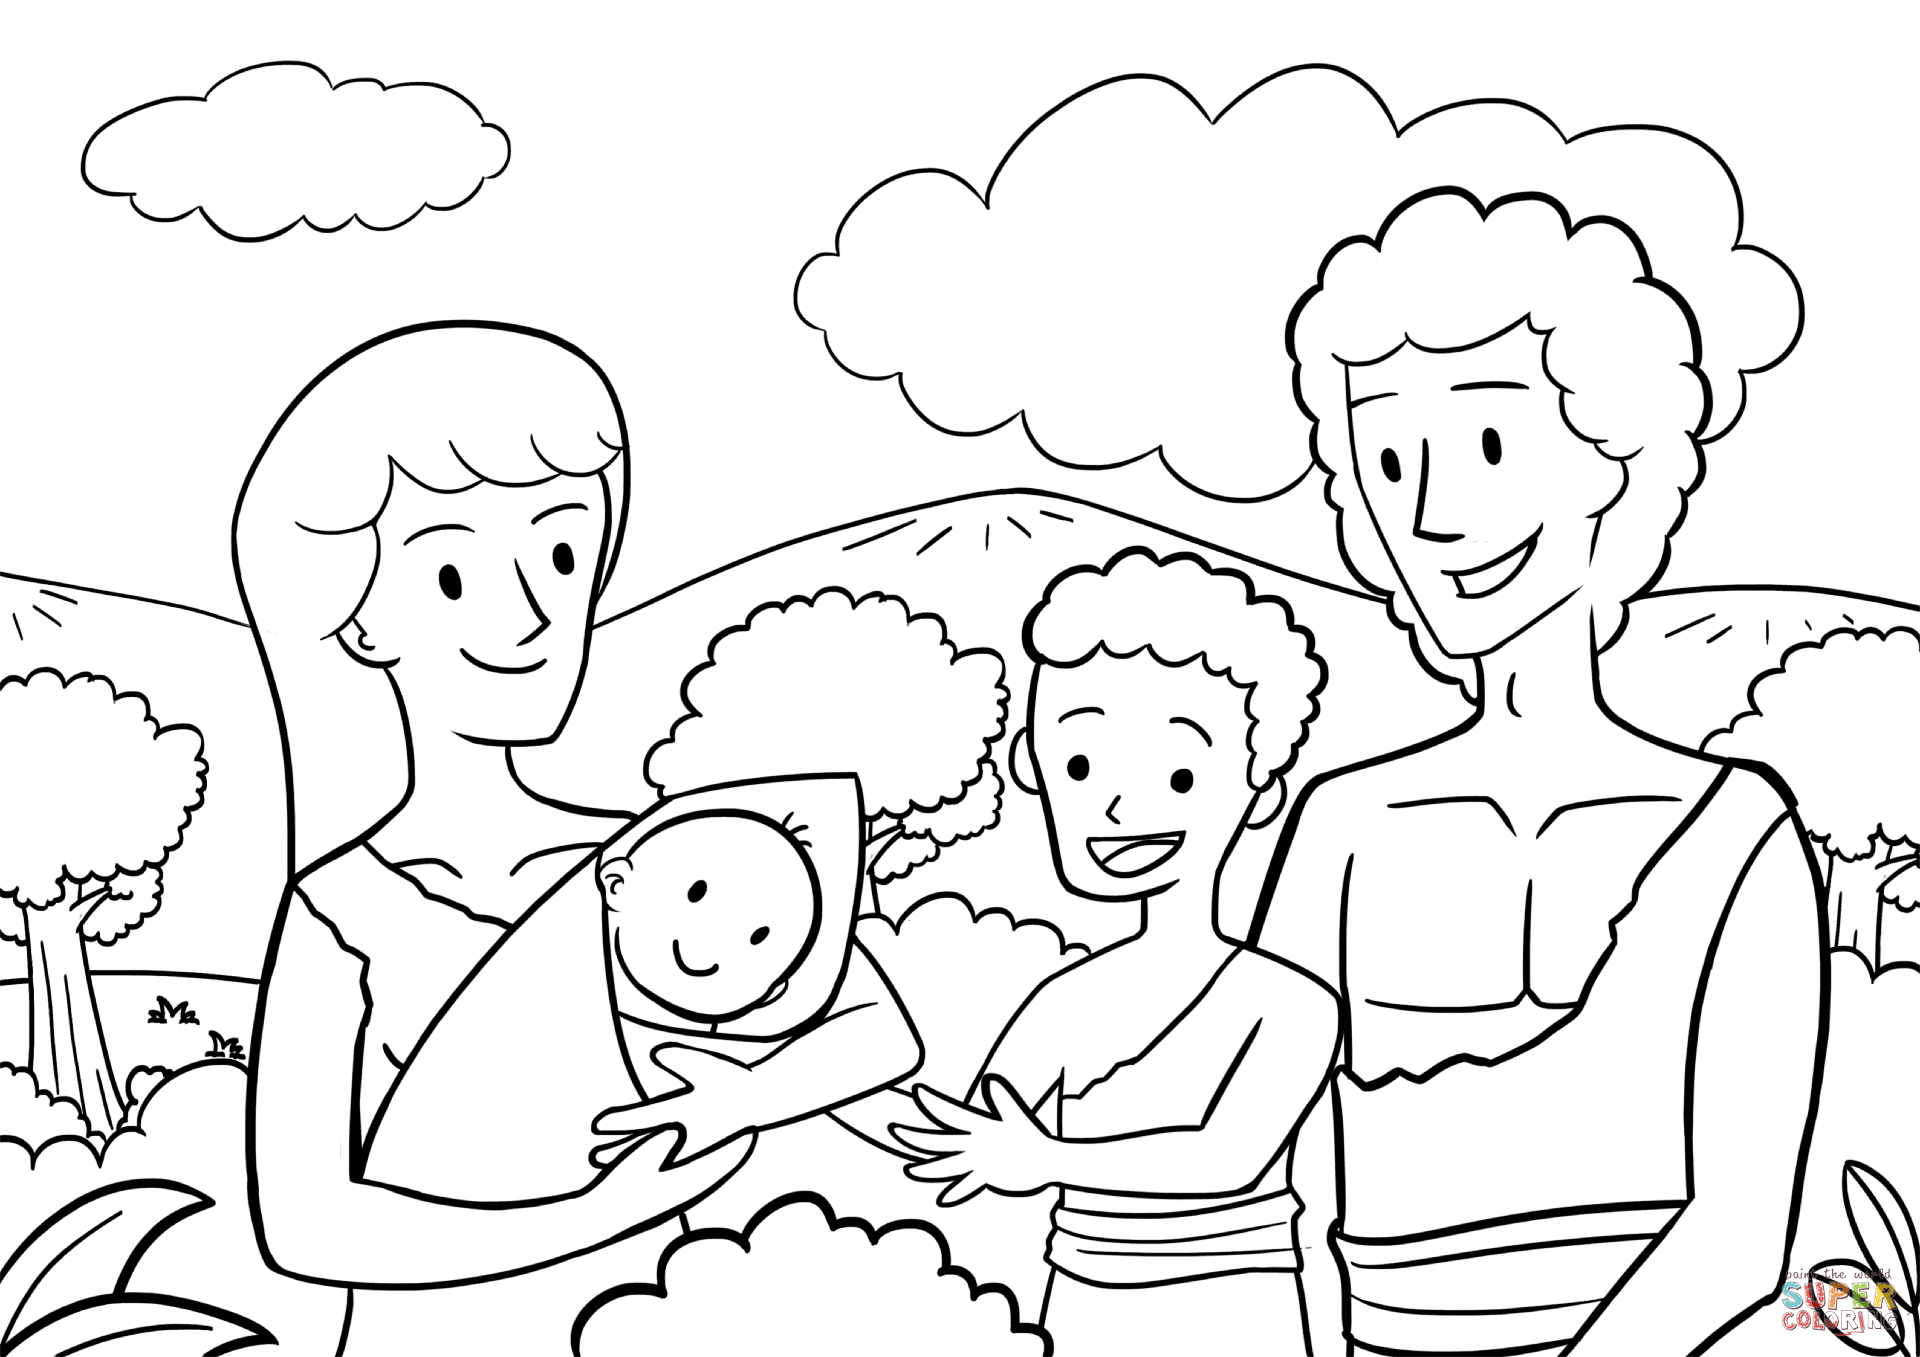 adam and eve coloring page 82 best images about bible ot adam and eve on pinterest adam page and coloring eve